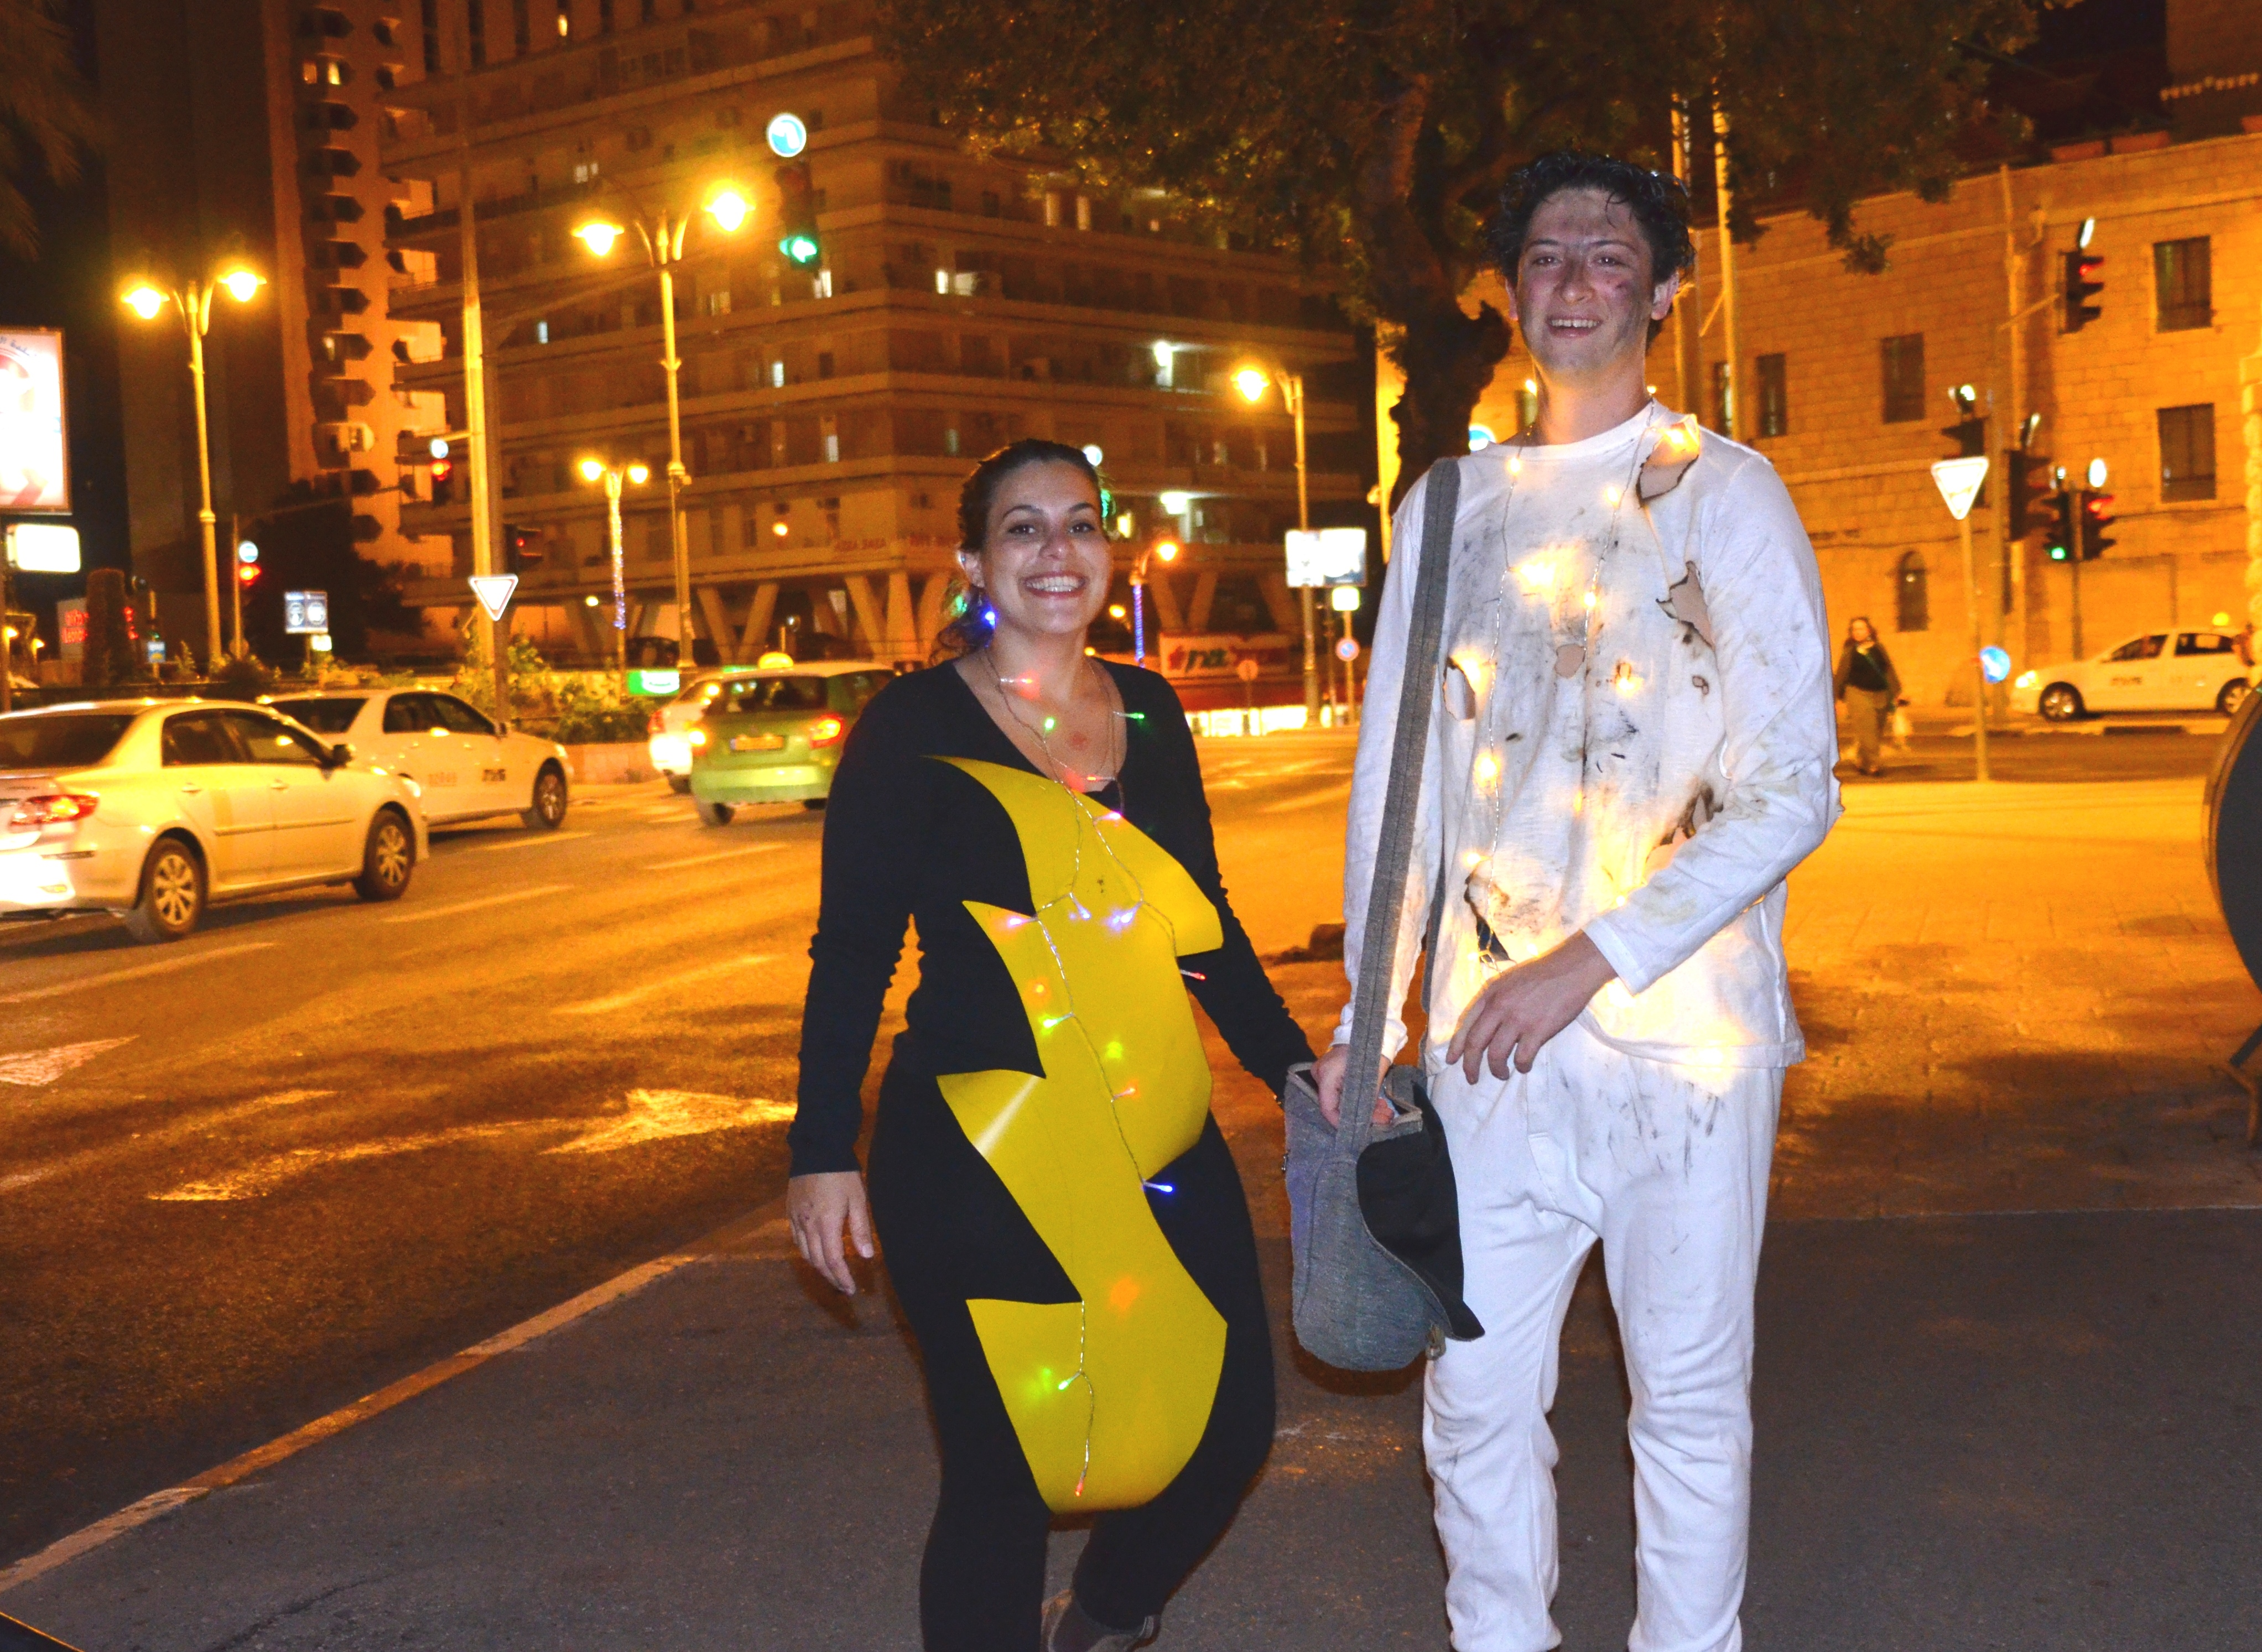 Purim costume with lights